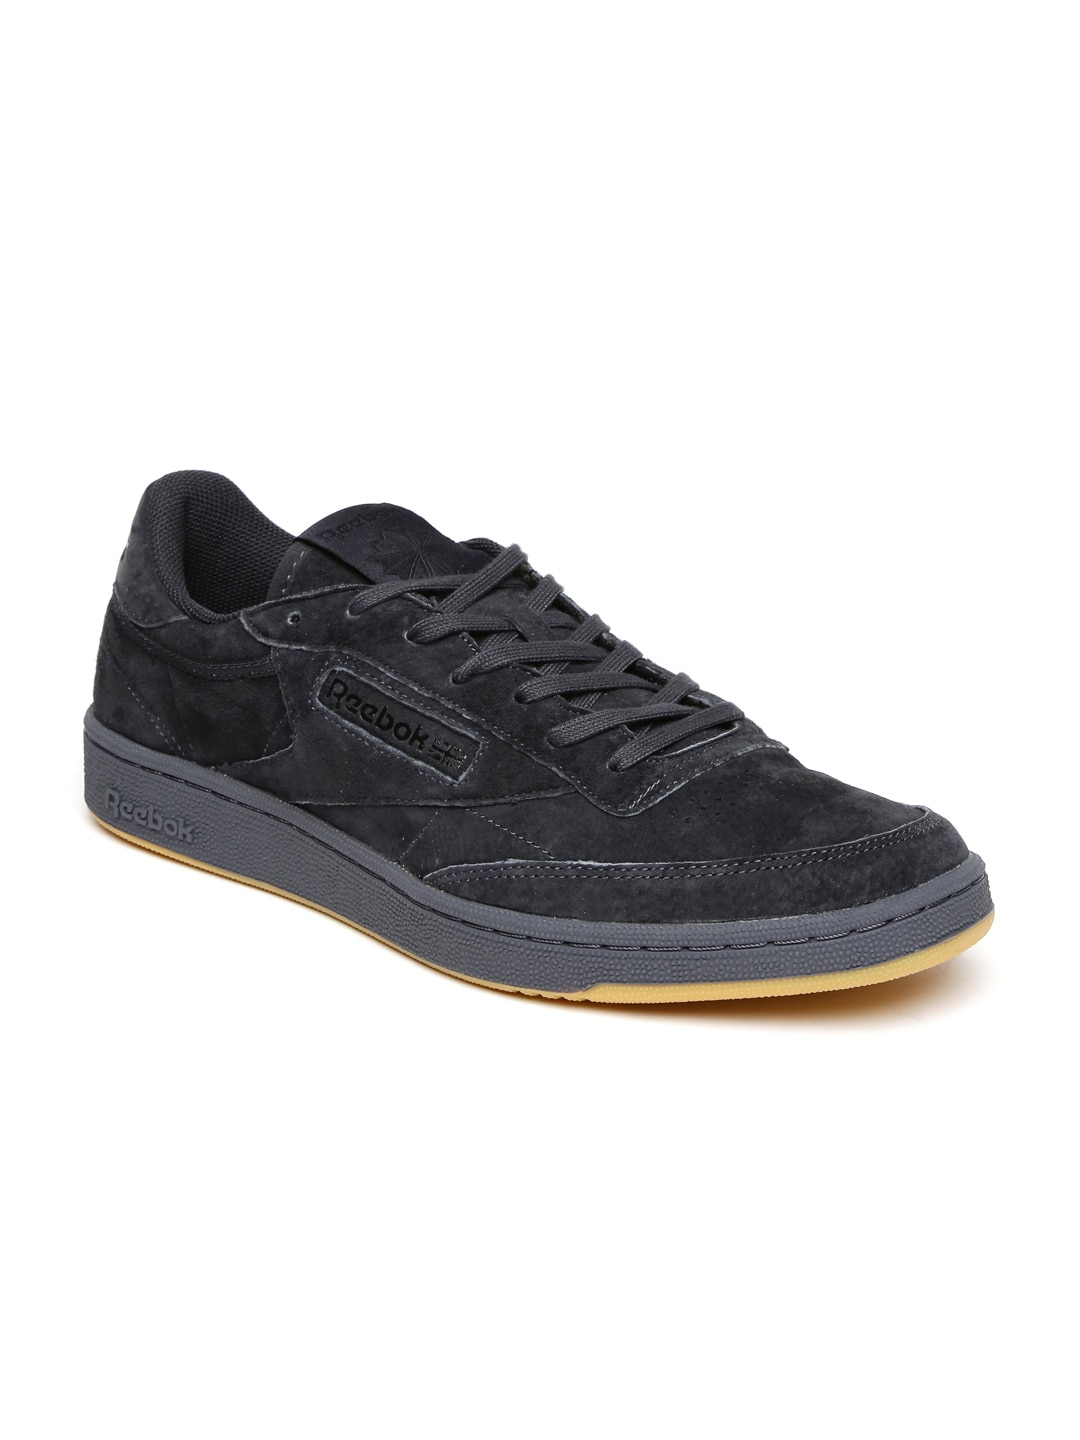 e2cf6a2e3e0 Reebok Prince In Bracelet Jackets Casual Shoes - Buy Reebok Prince In  Bracelet Jackets Casual Shoes online in India